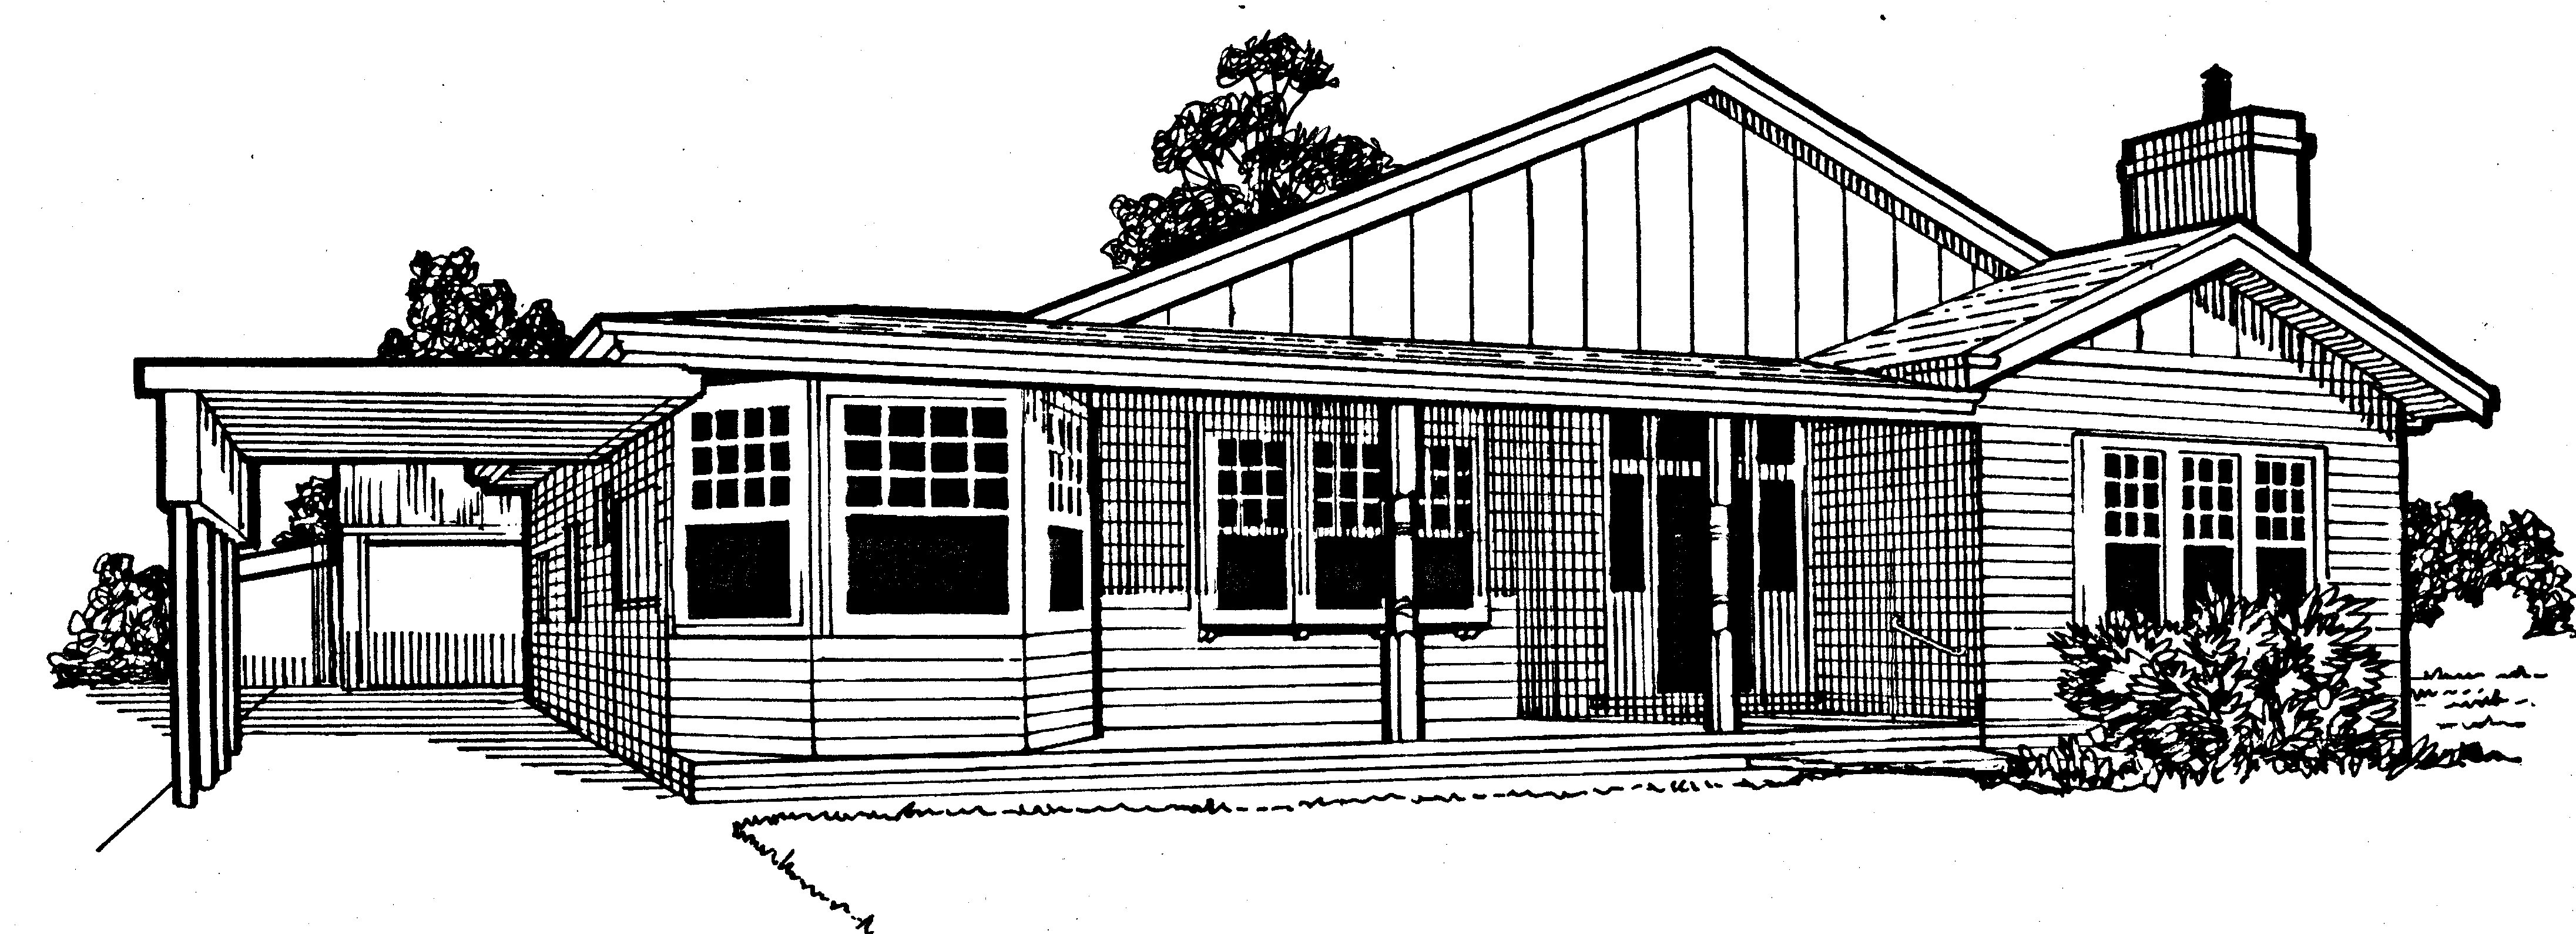 House drawing black for Free house drawing